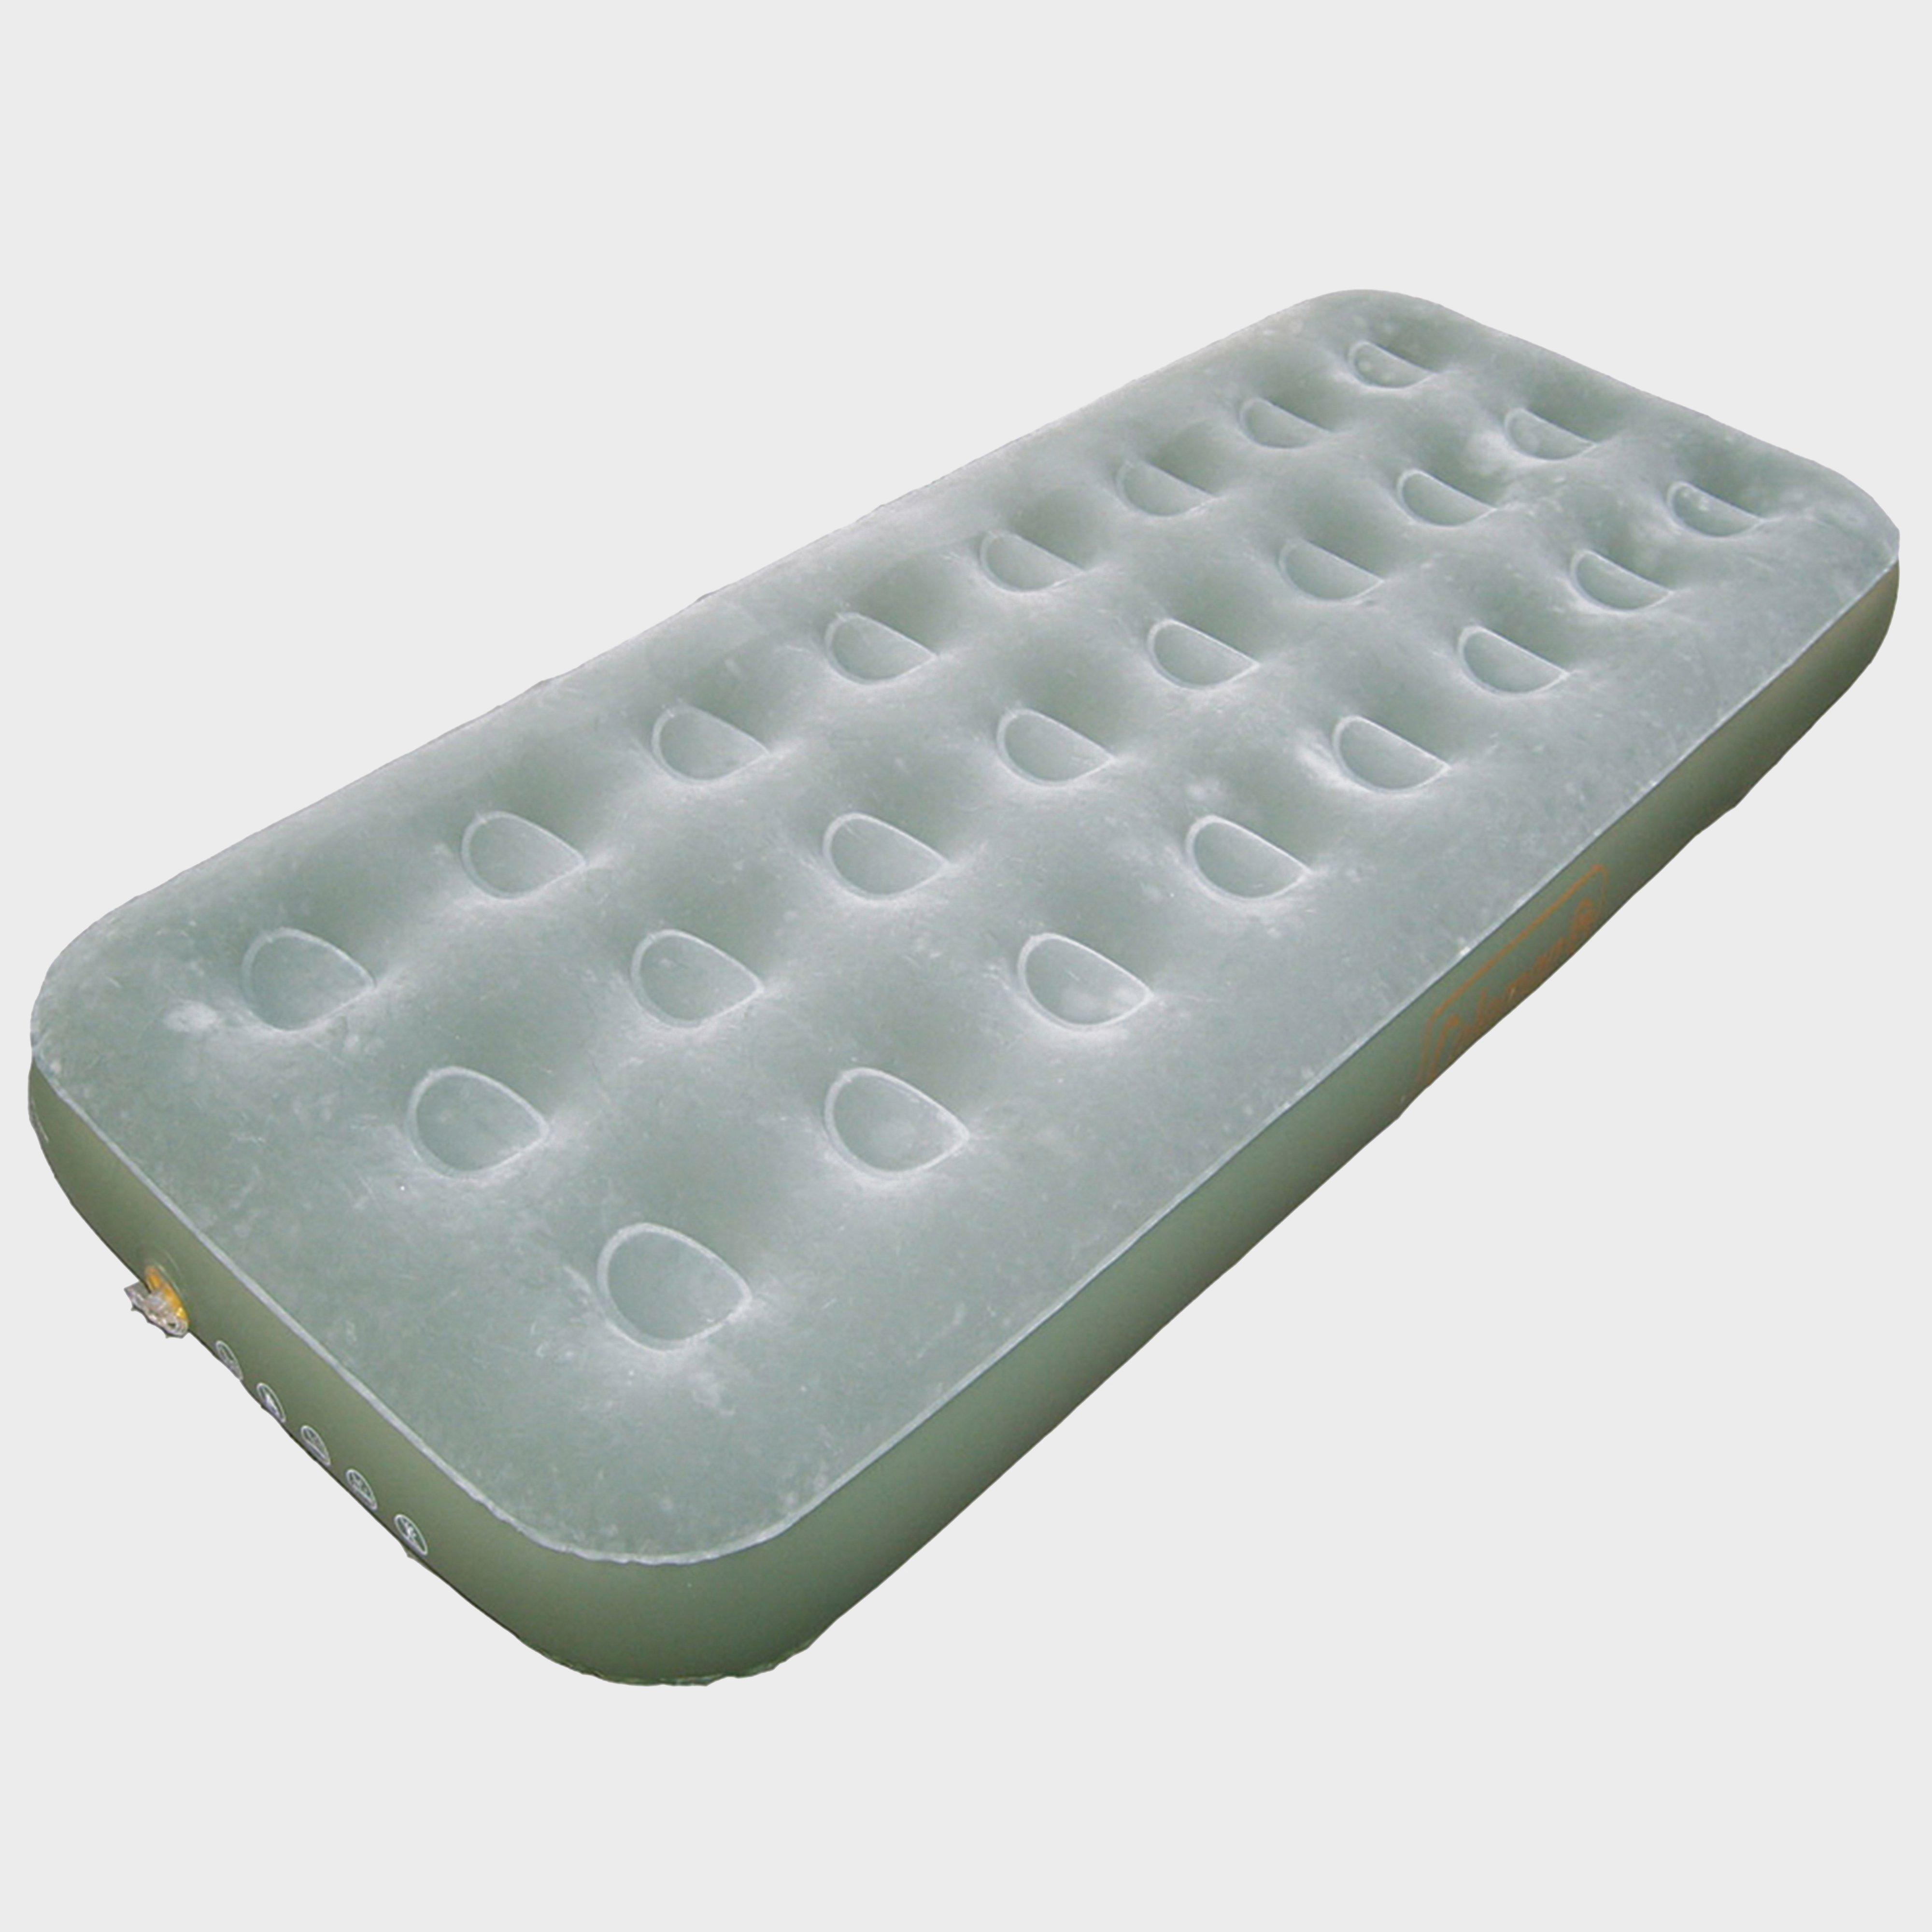 comfort single airbed - Airbeds